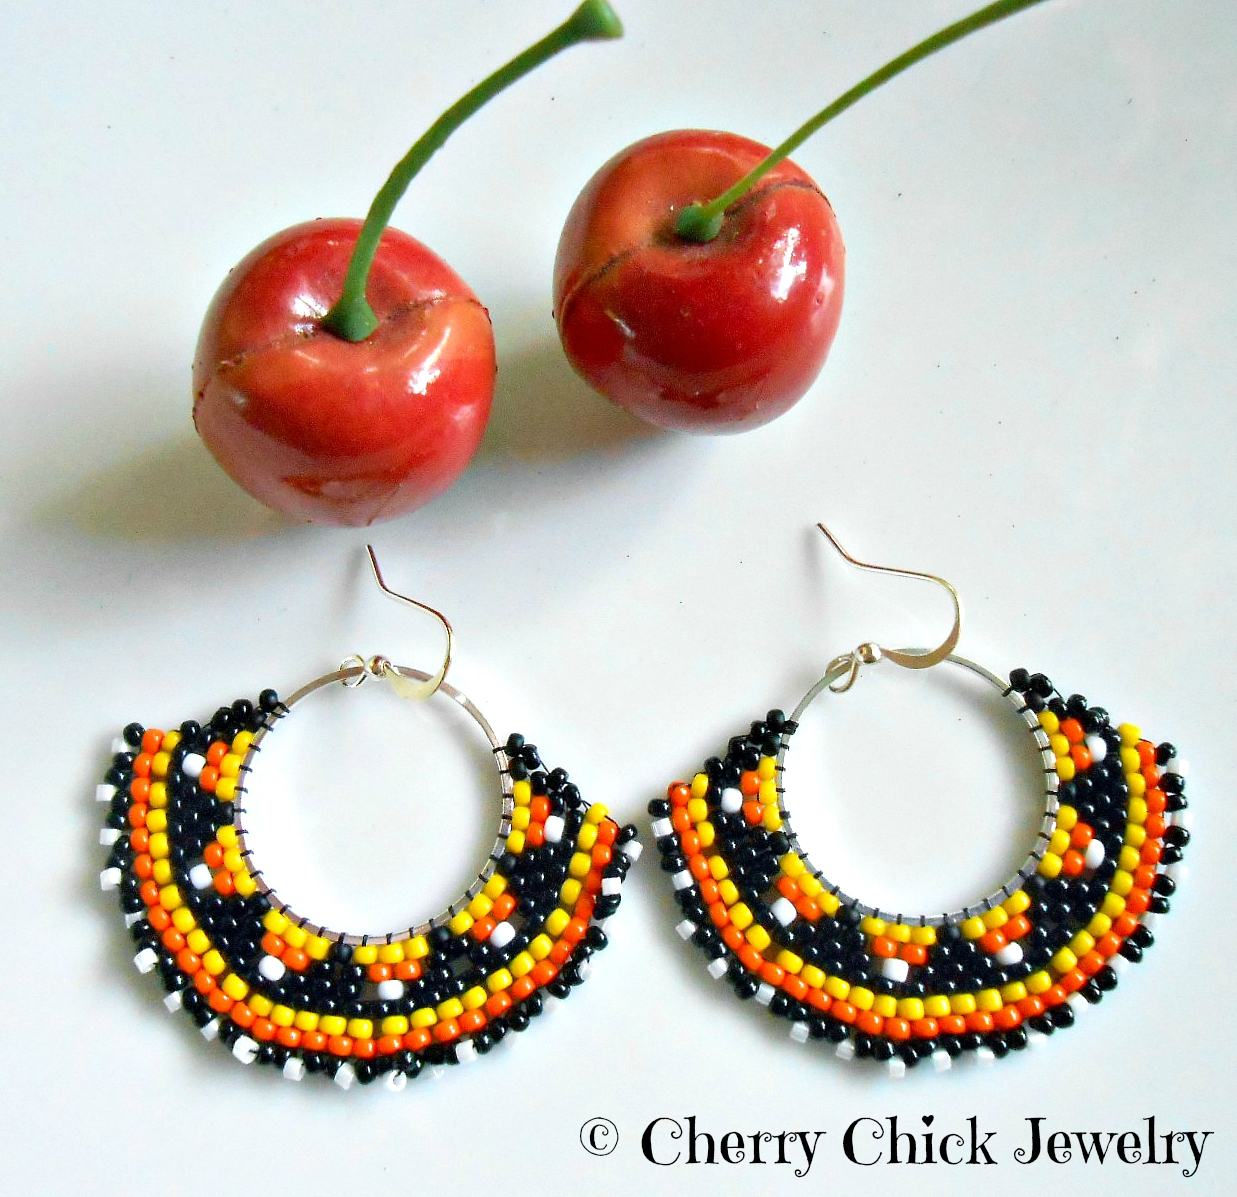 Pumpkin Spice Everything Is Out Now So That Means It's Time To Think About  Autumn Earringsright? I've Just Added A Couple Of Hand Stitched Beaded  Fall